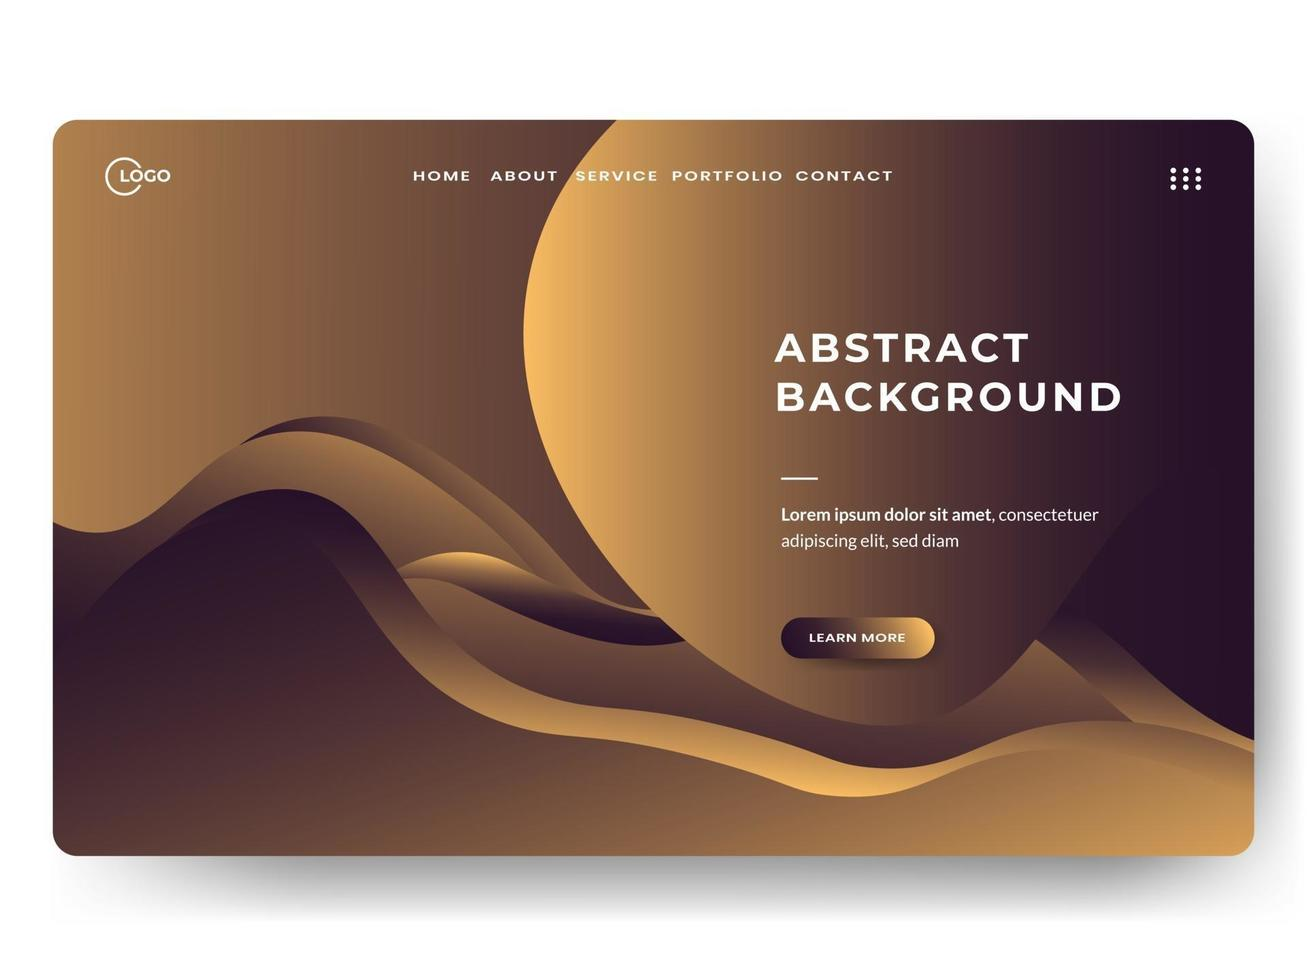 Liquid Abstract Background Gold Minimal for landing pages vector